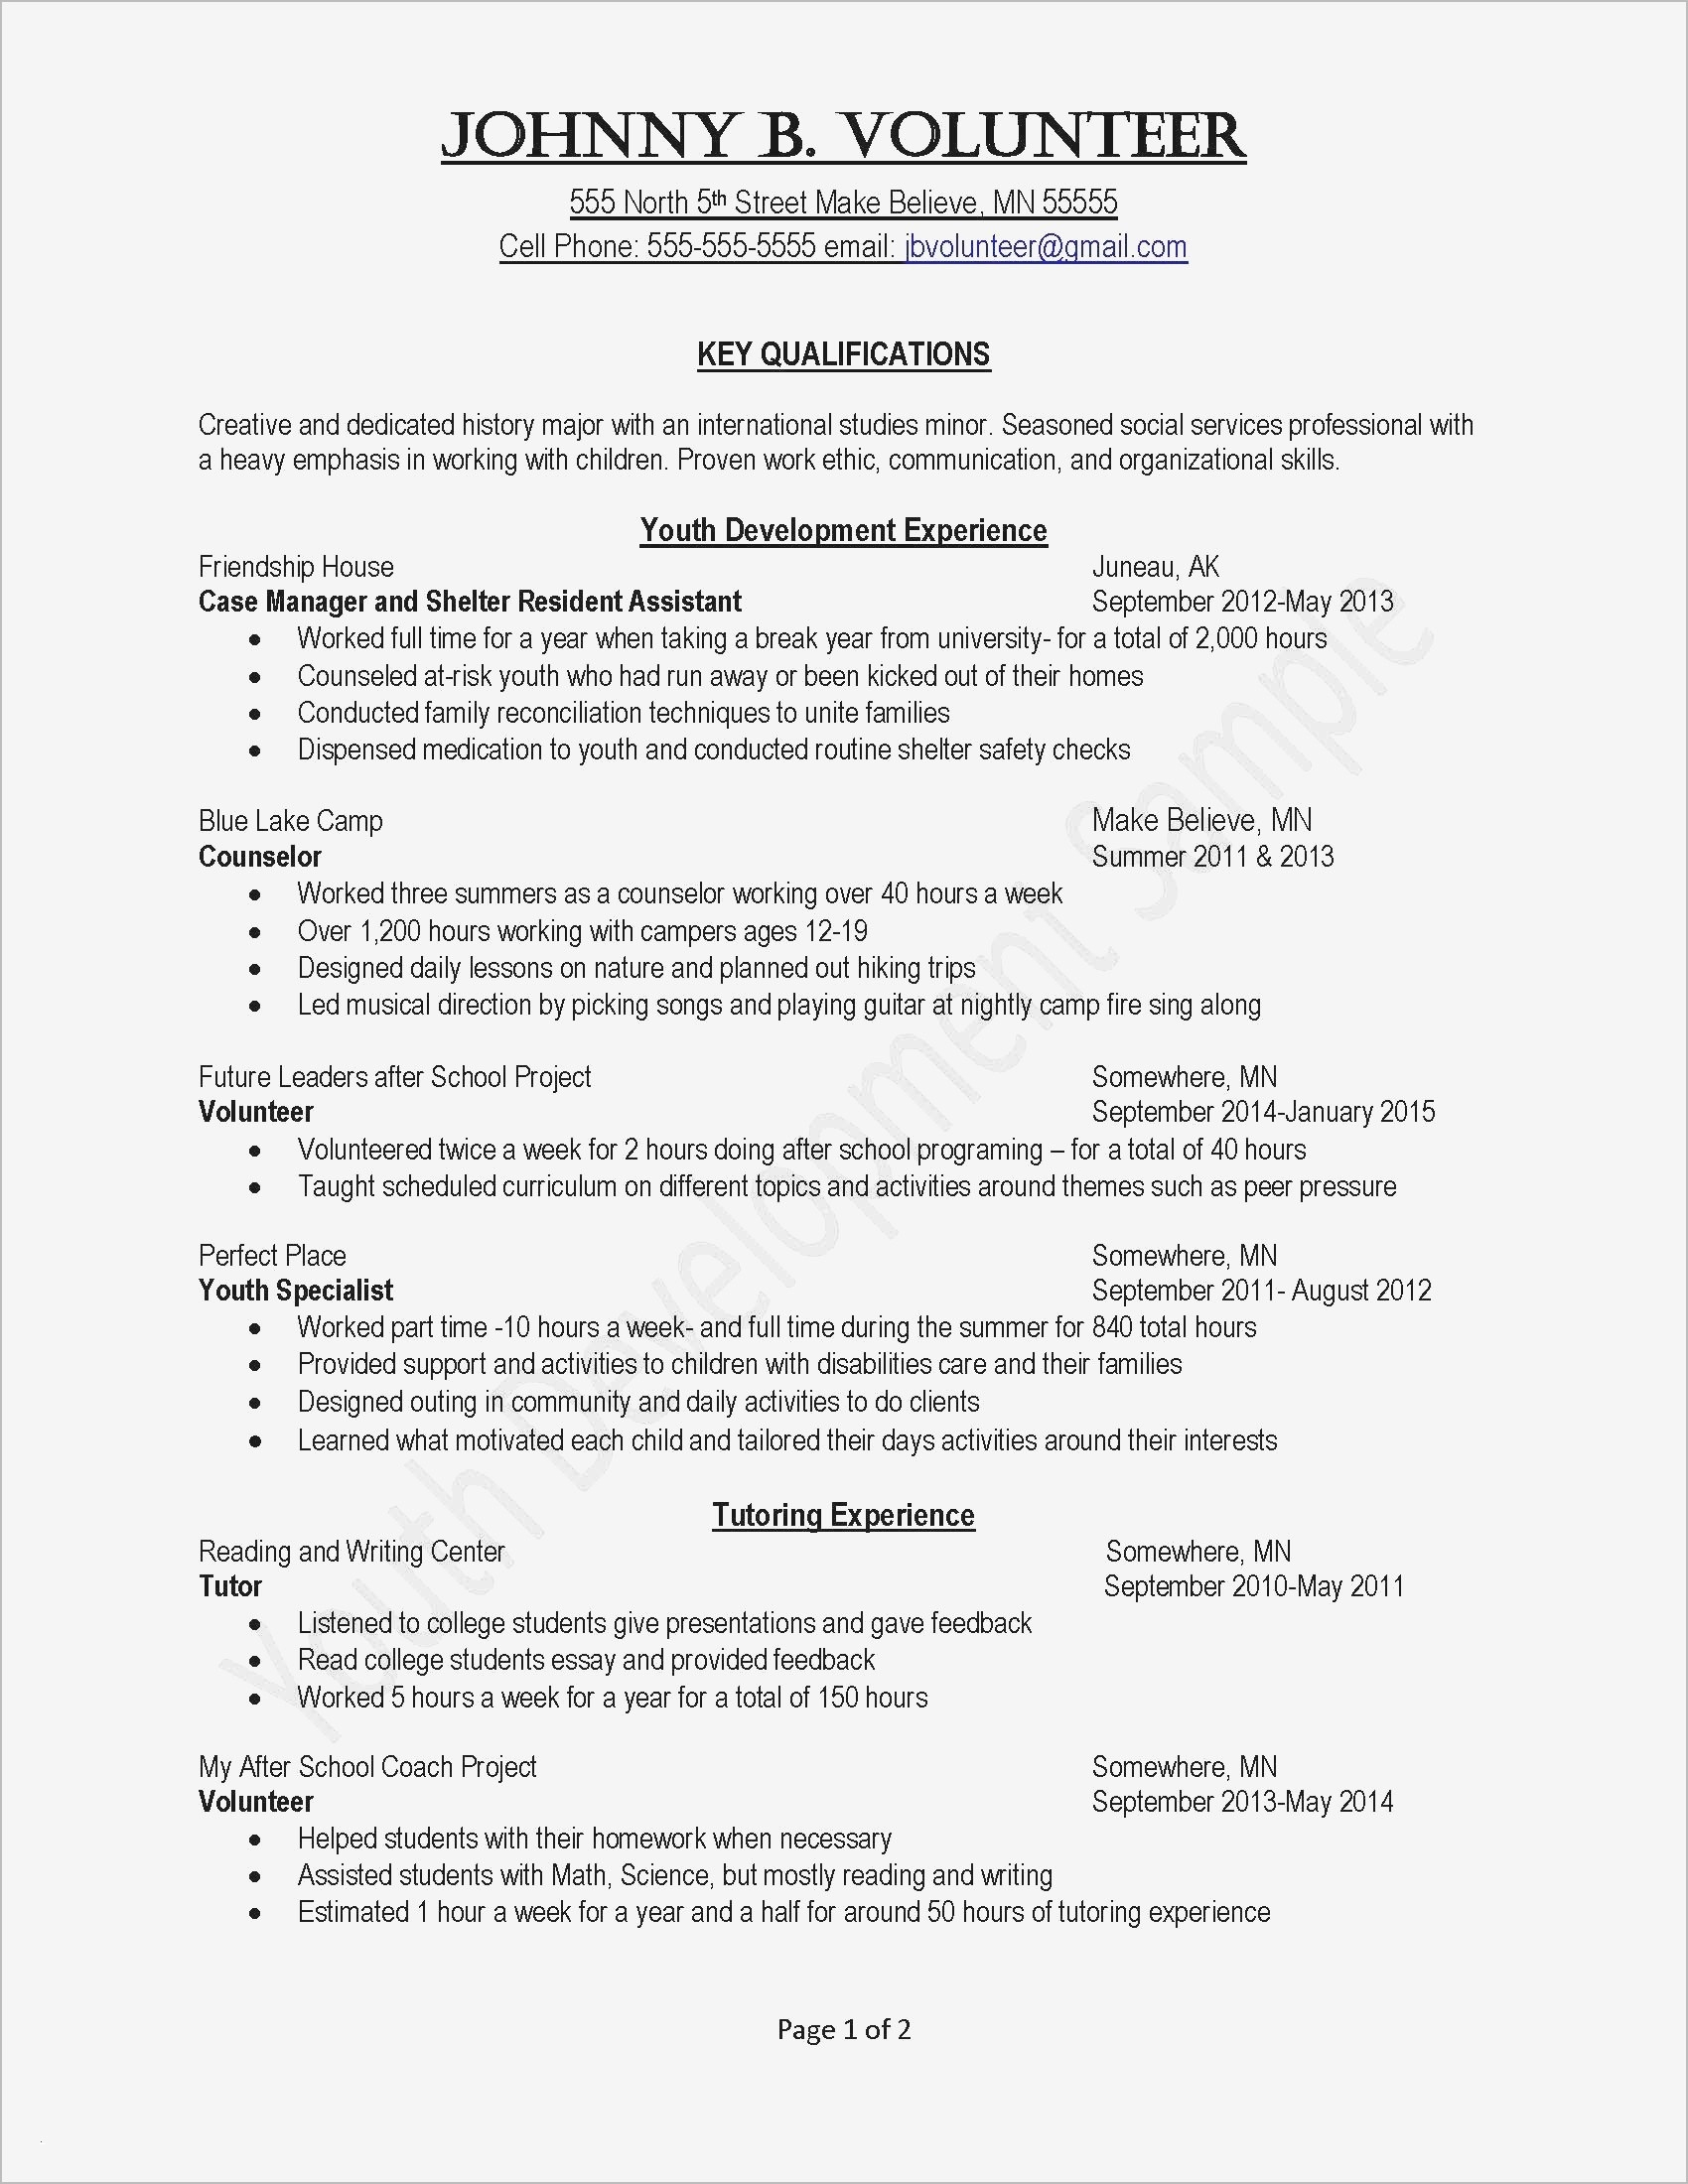 Resume Sample for College Student - 20 Inspirational Resume Template College Student Langkawi Land